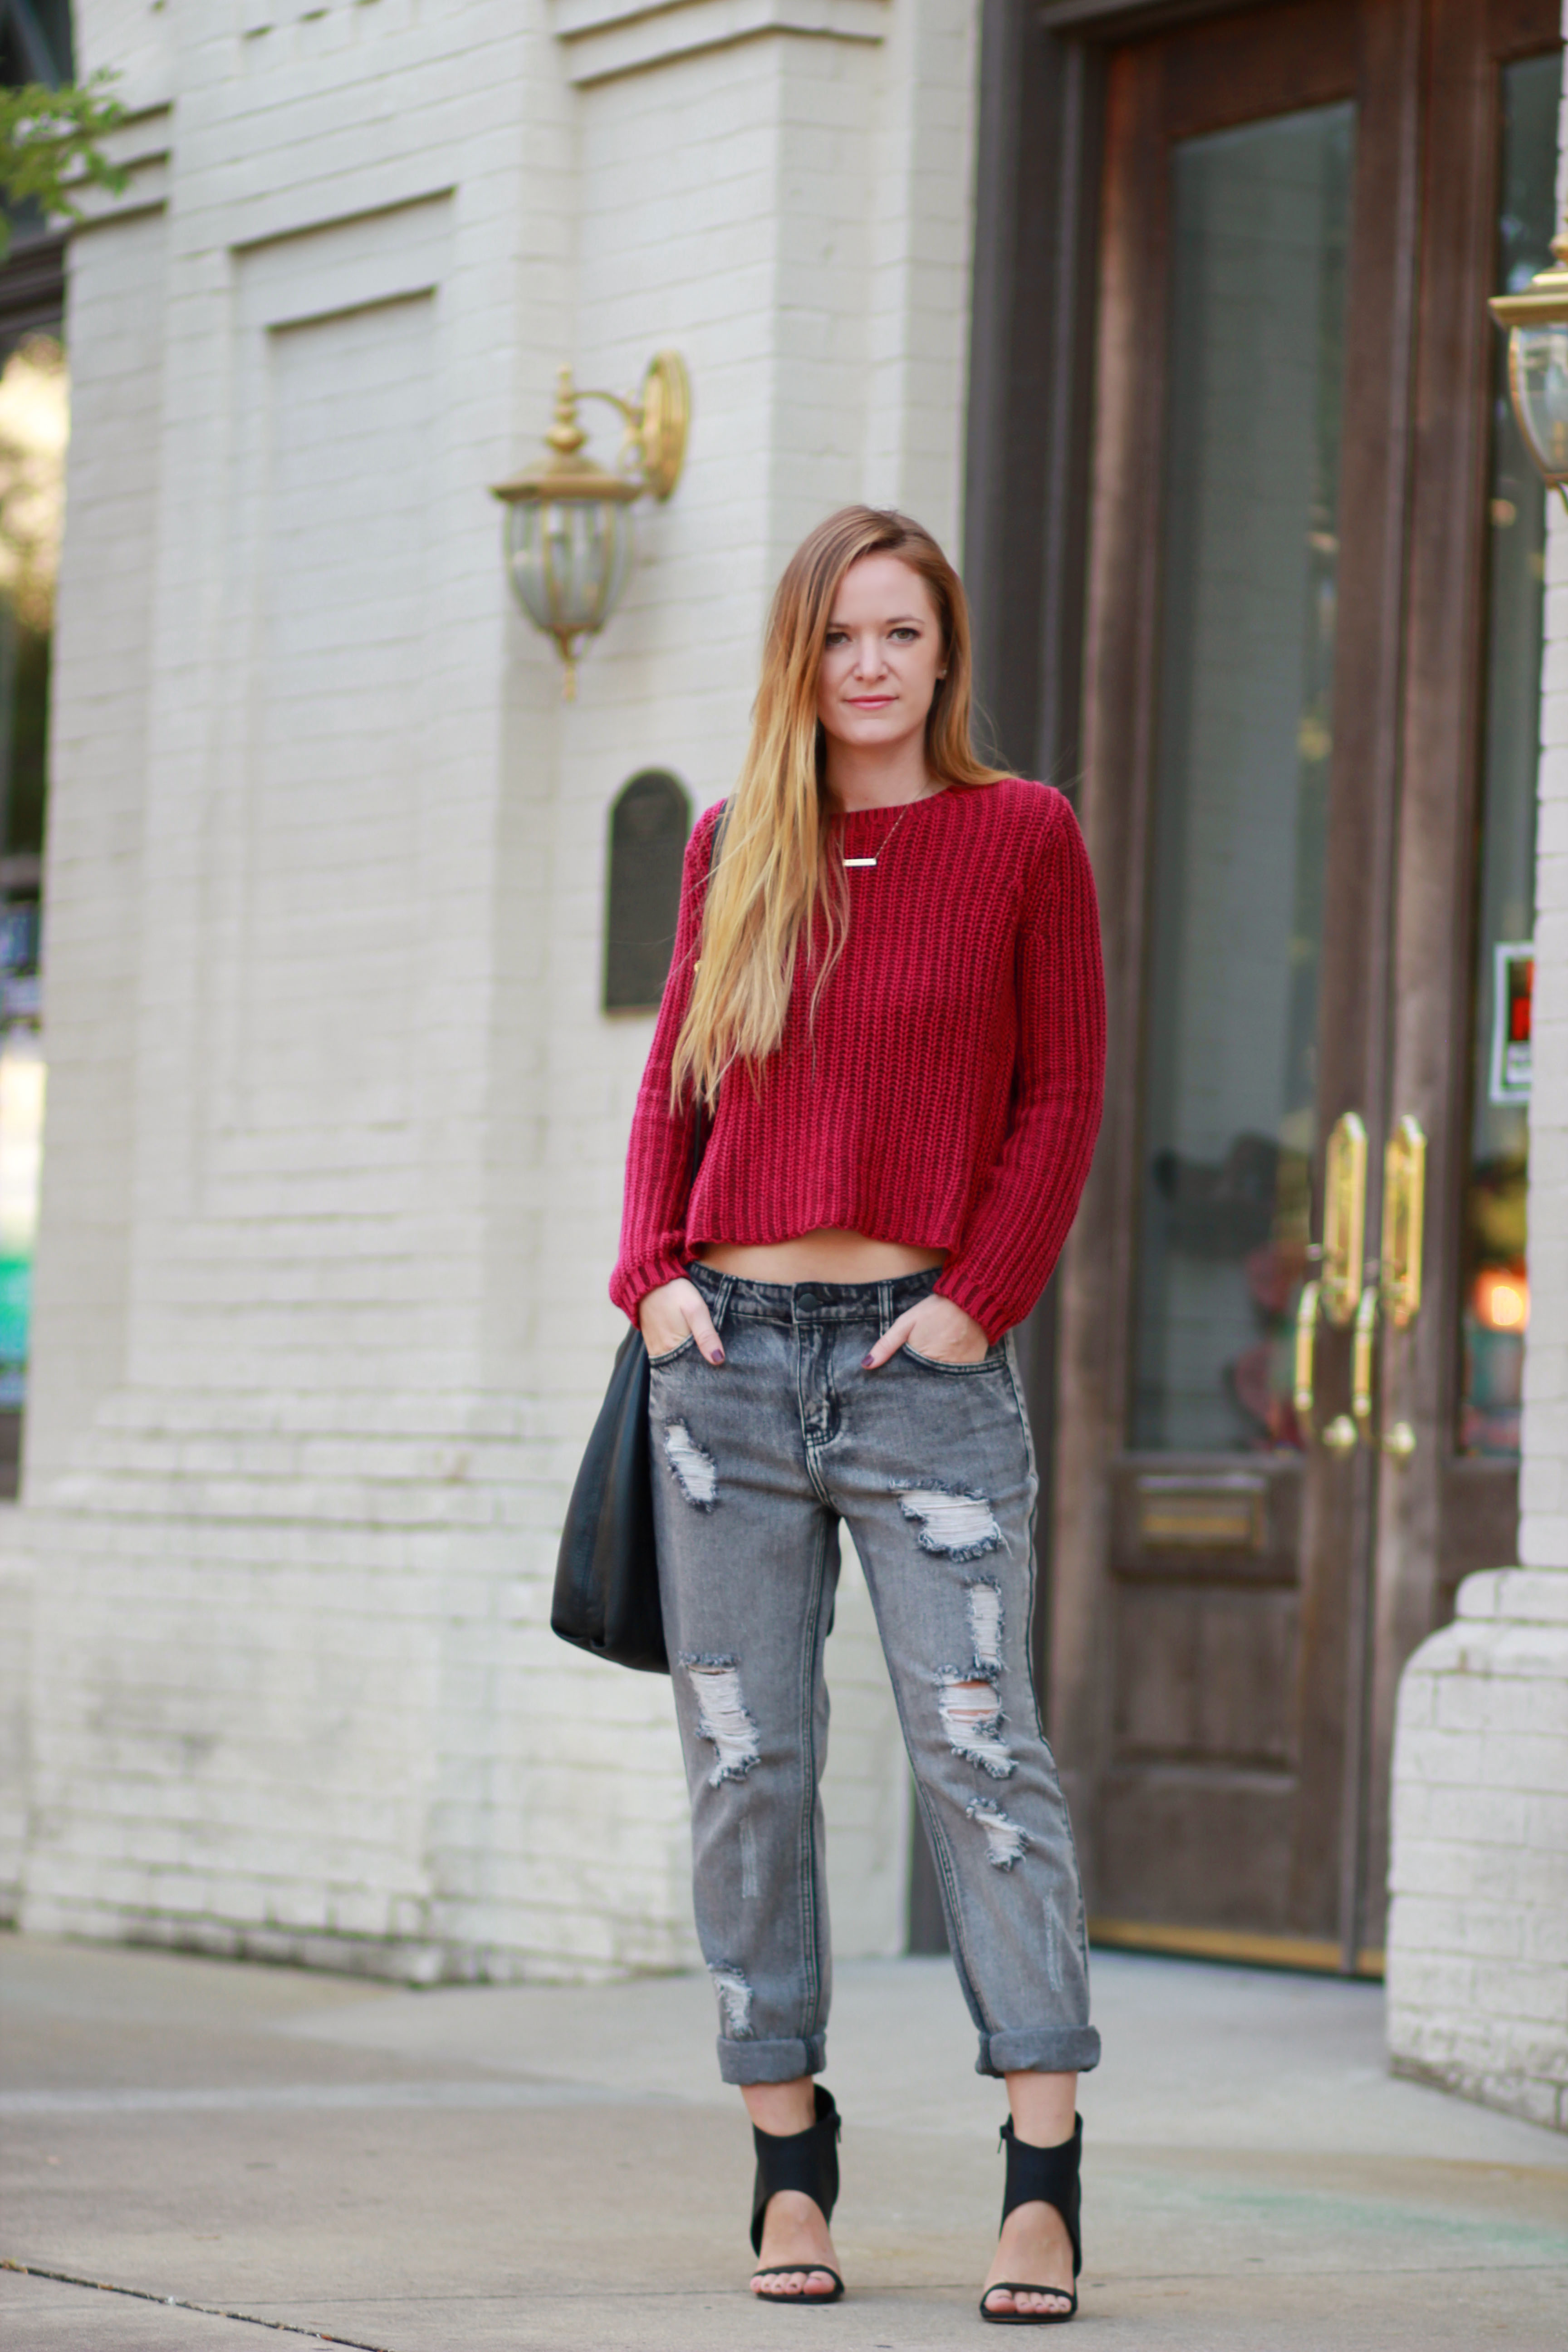 florida fashion blogger styles aeropostale crop top, forever 21 boyfriend jeans, and michael kors bag  for a casual fall outfit